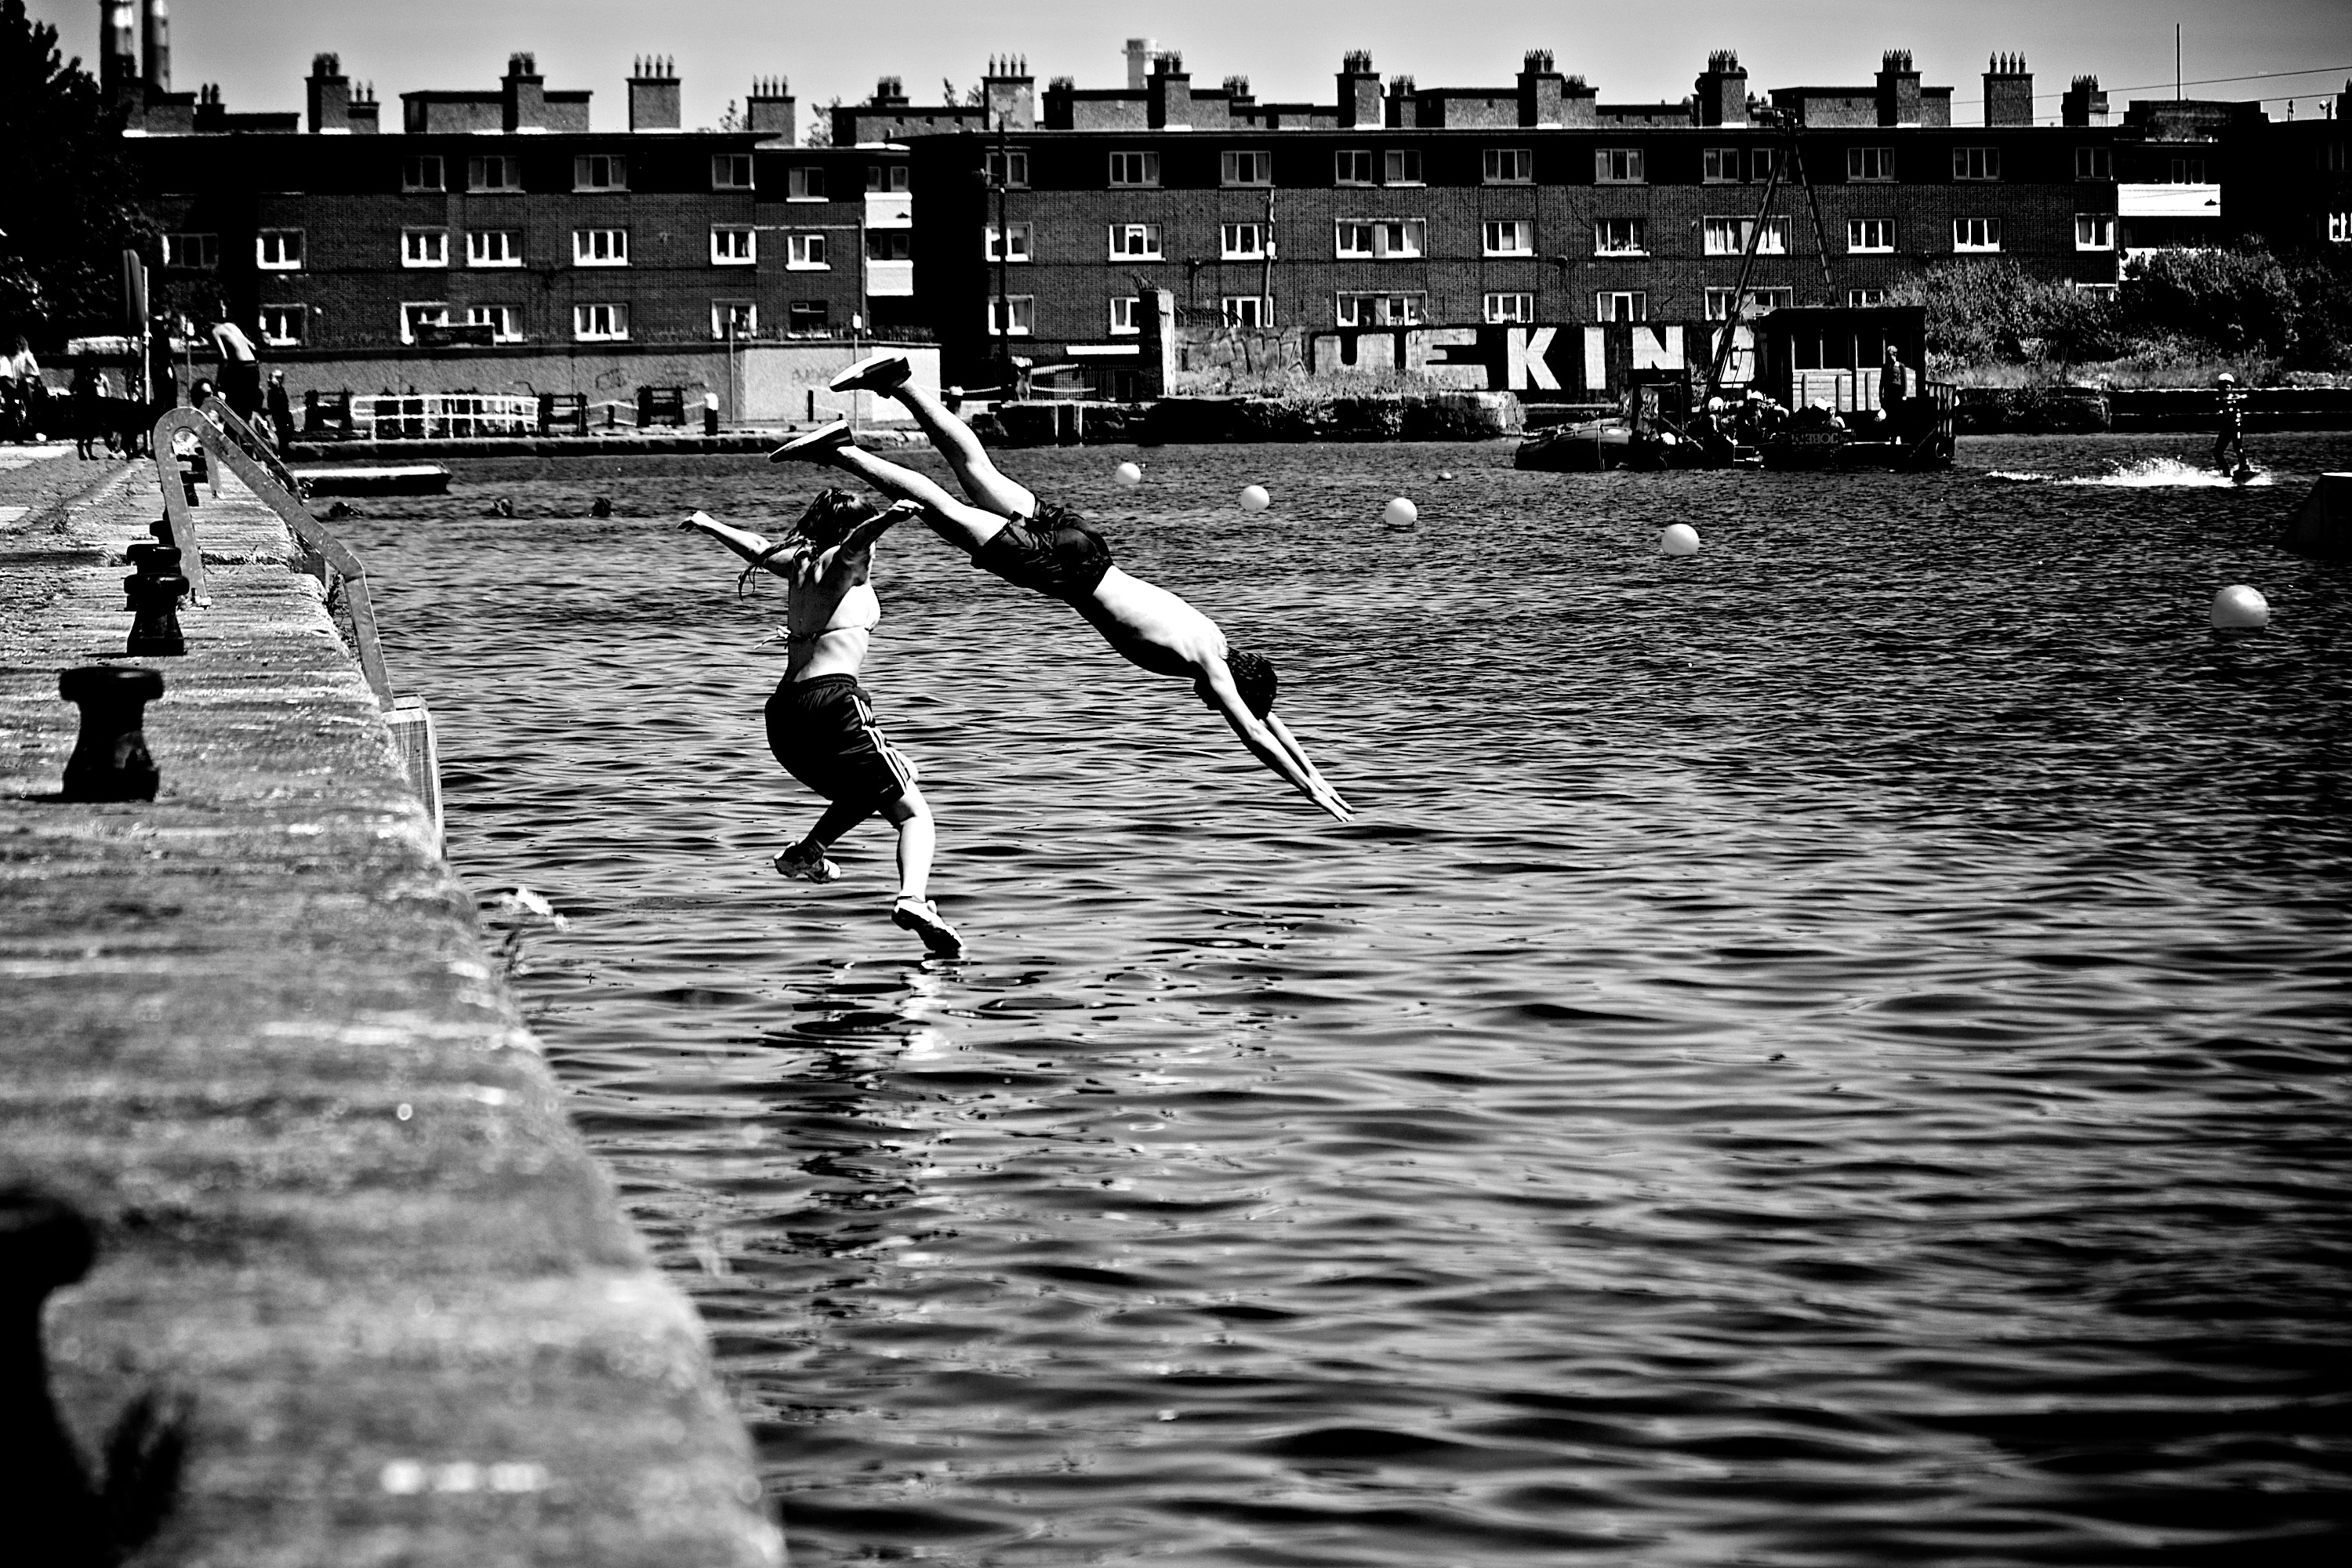 Swimmers diving into a lake- represents me diving in to the new archives blog project